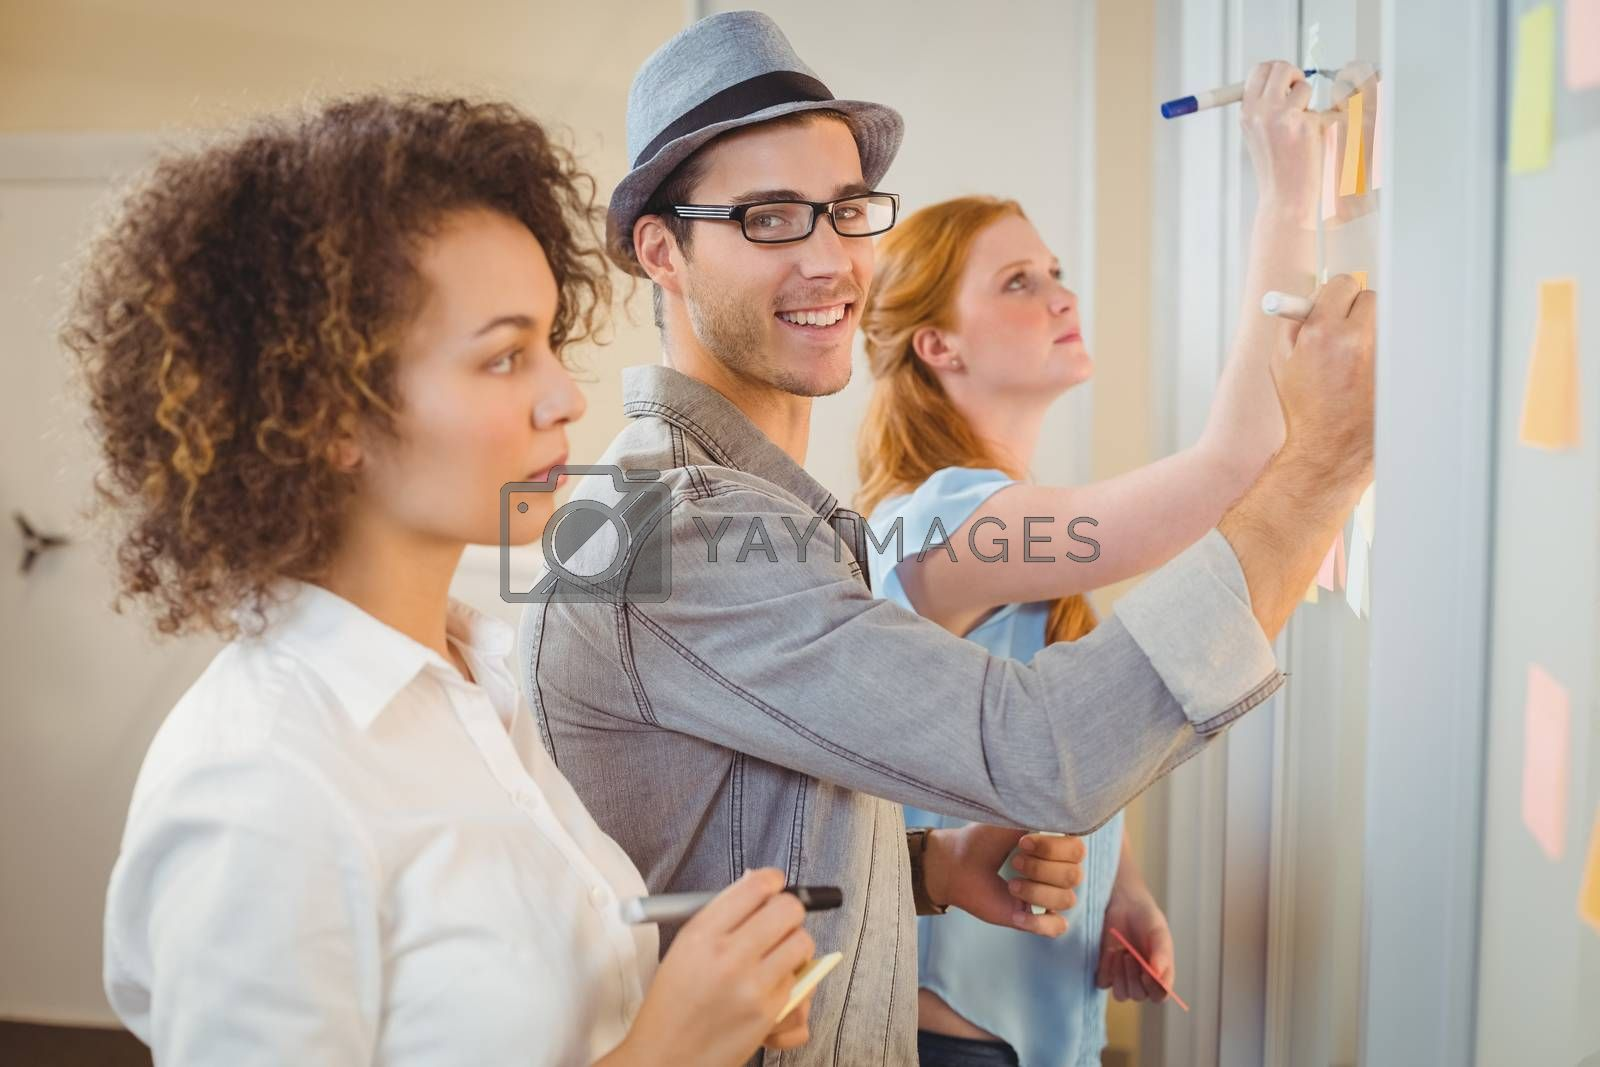 Portrait of smiling businessman writing on adhesive notes on glass wall during meeting with colleagues in office